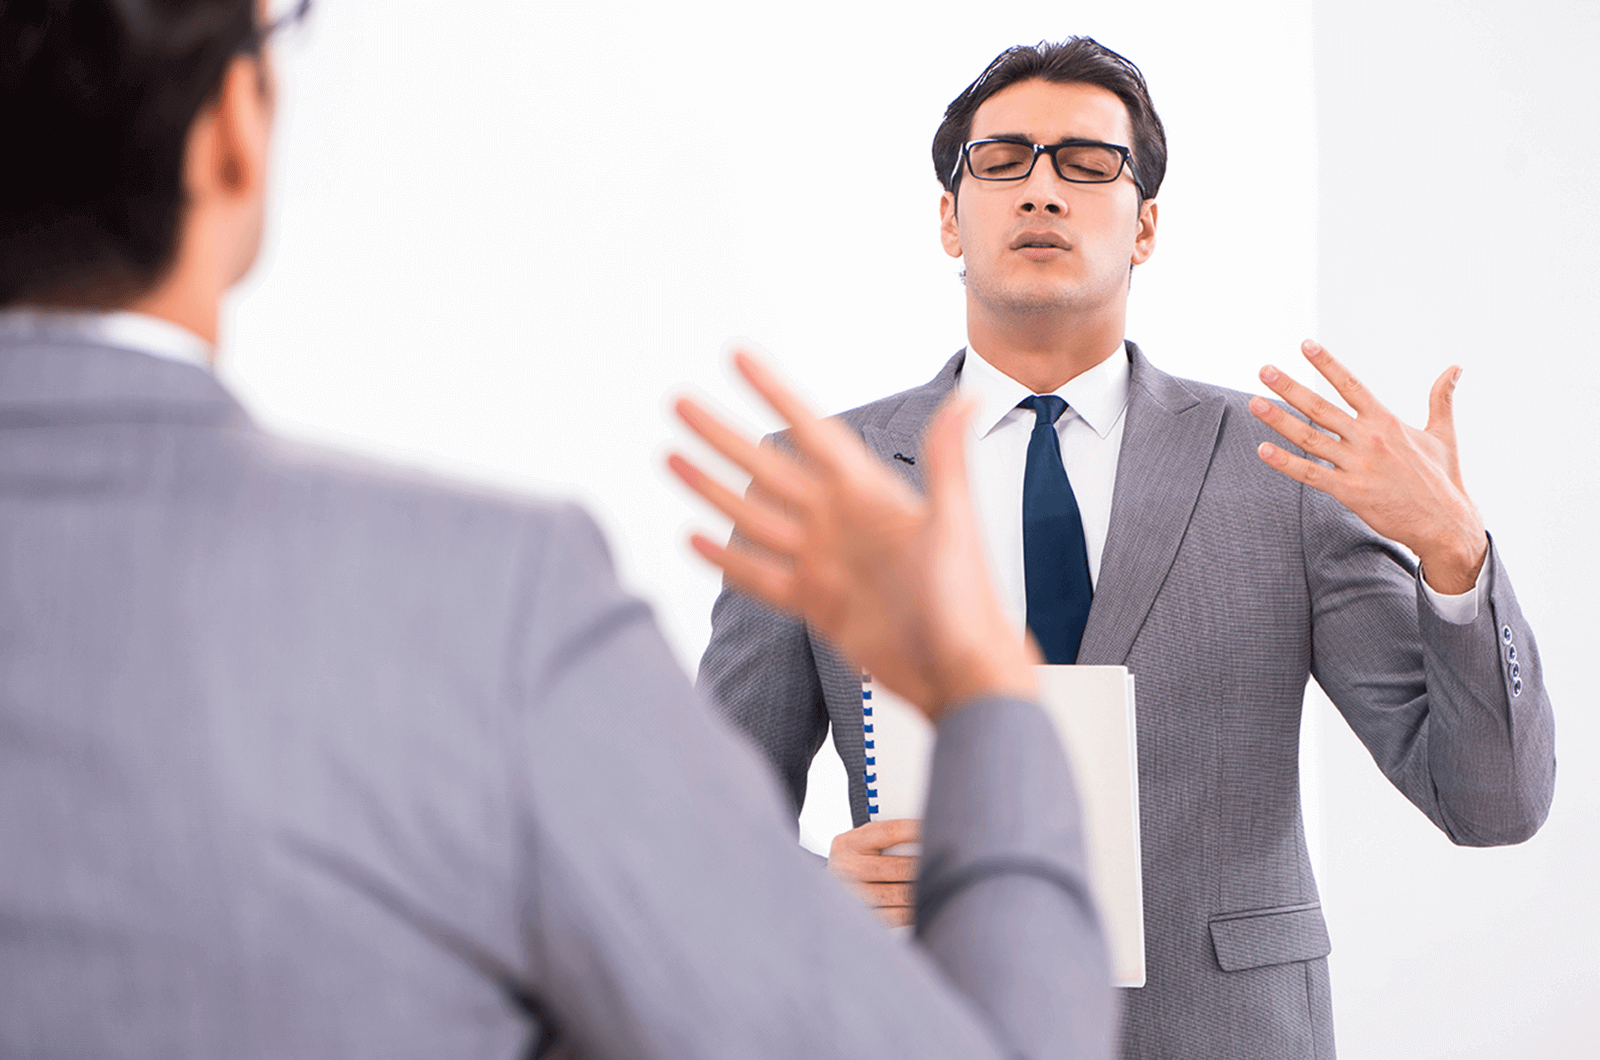 Man looking in mirror warming up for speech